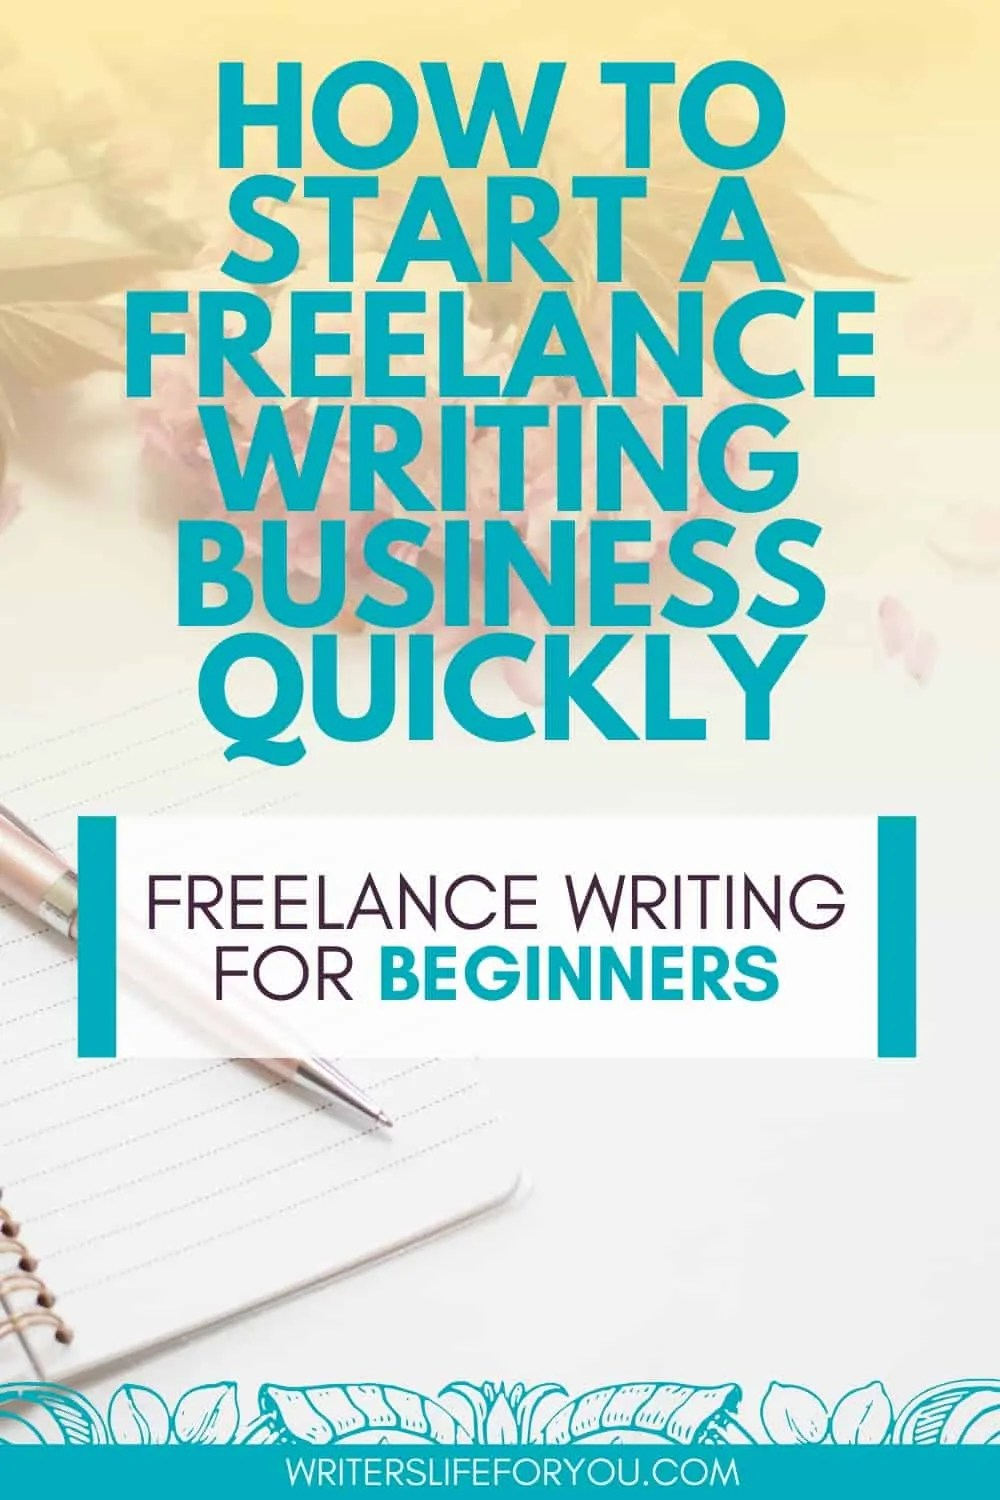 How to Start a Freelance Writing Business the Easy Way